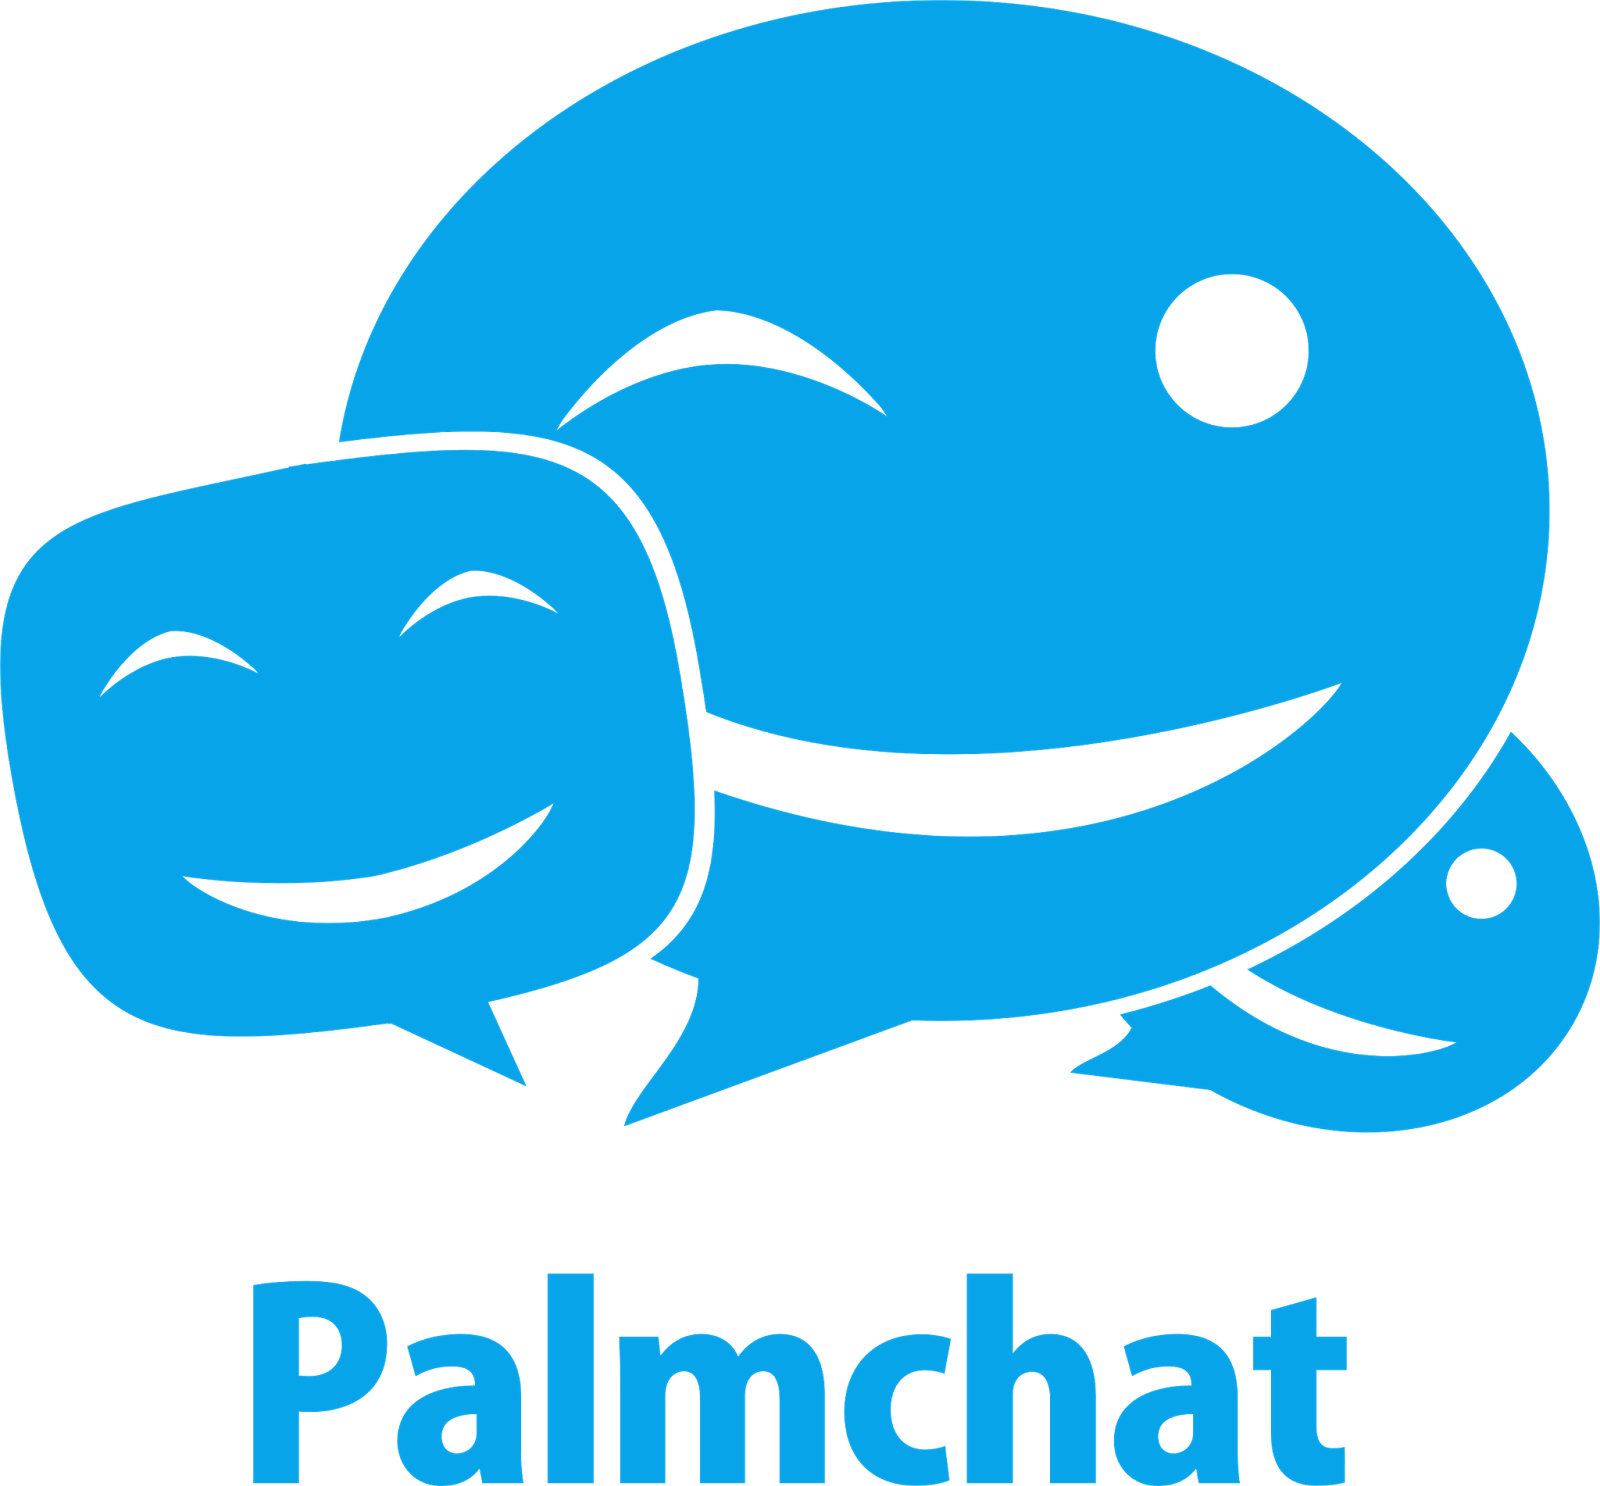 Palmchat dating apps